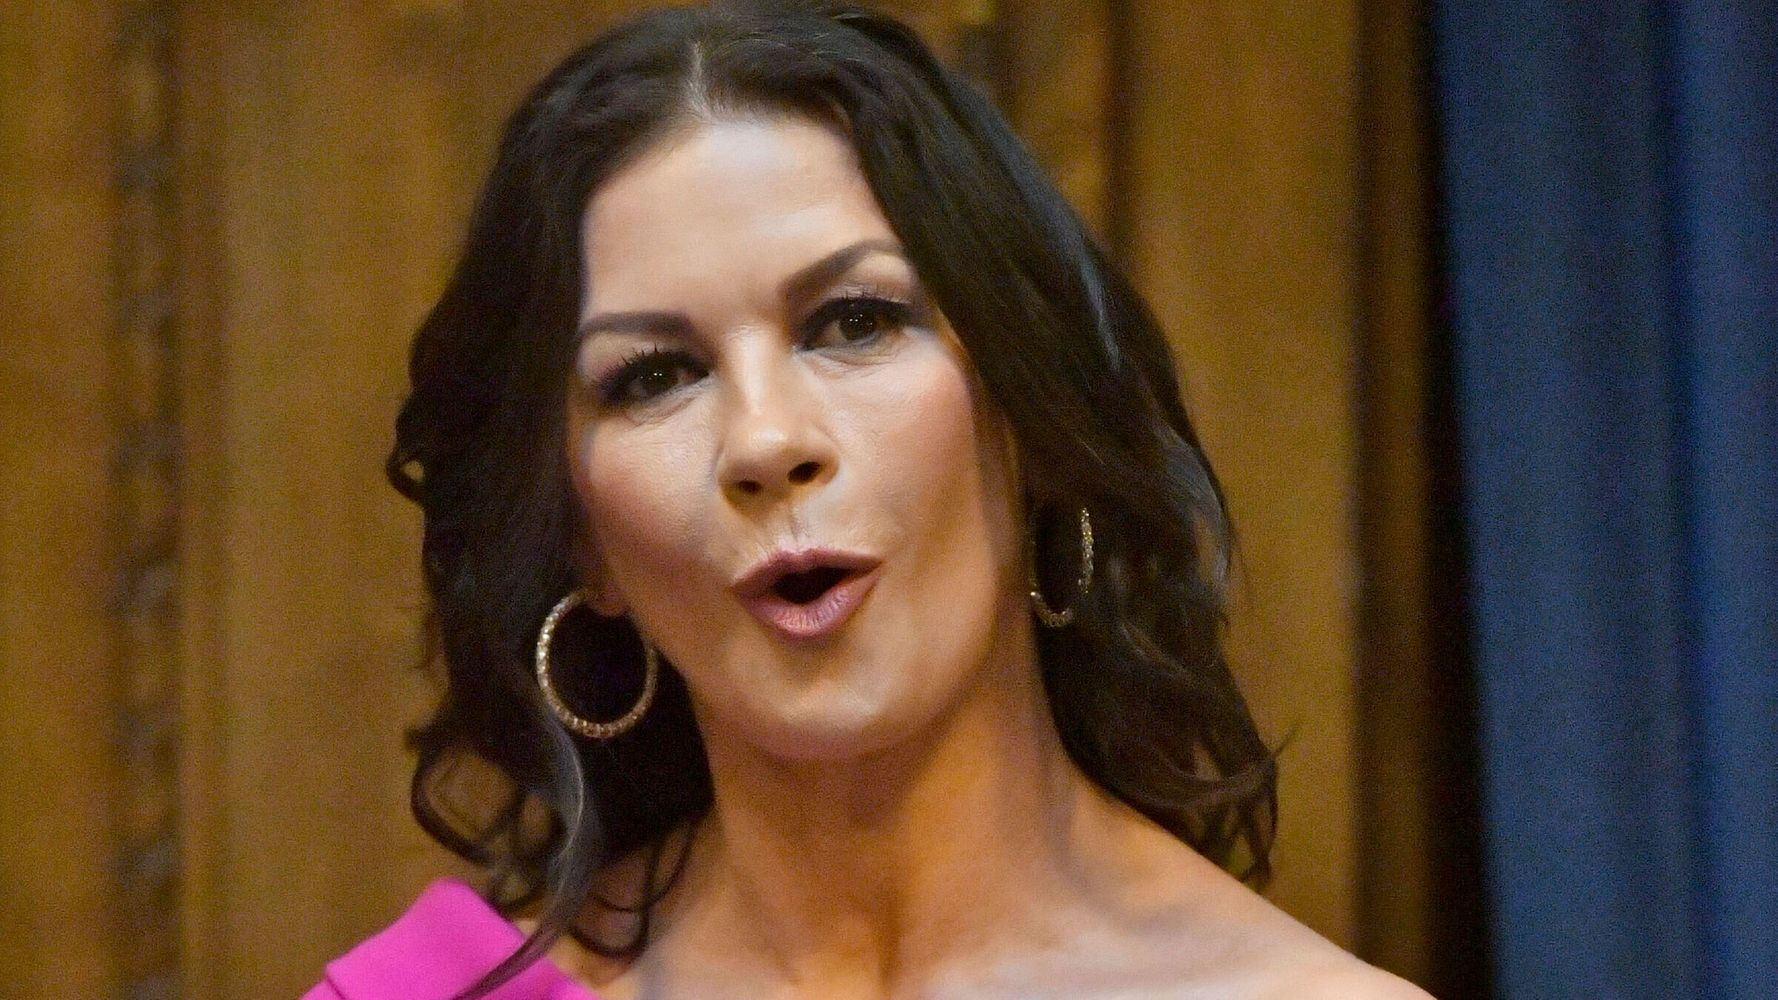 Westlake Legal Group 5d68e6053c00003300485d13 Catherine Zeta-Jones Finds Out About Son's Skydive In The Funniest Way